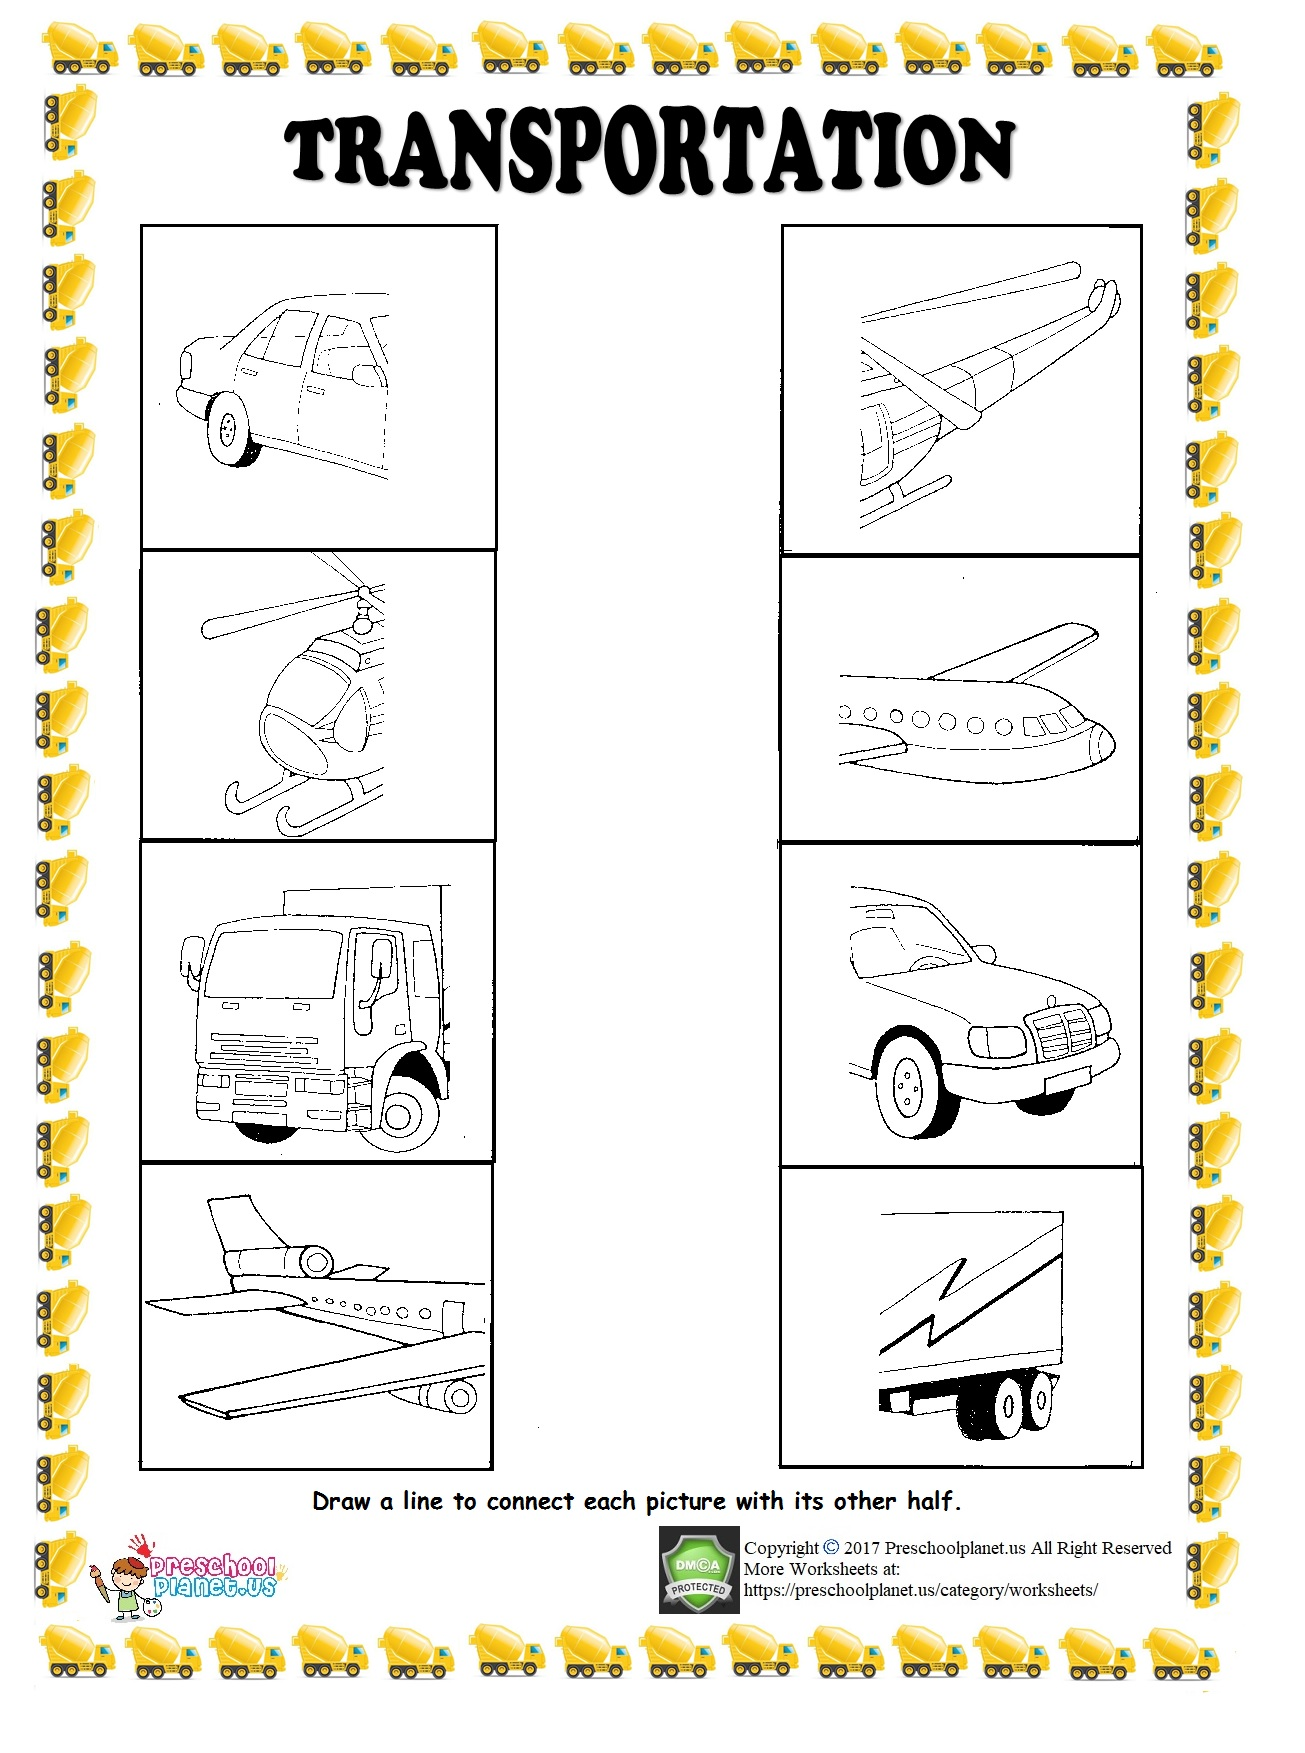 Ship Trace Worksheet Preschoolplanet